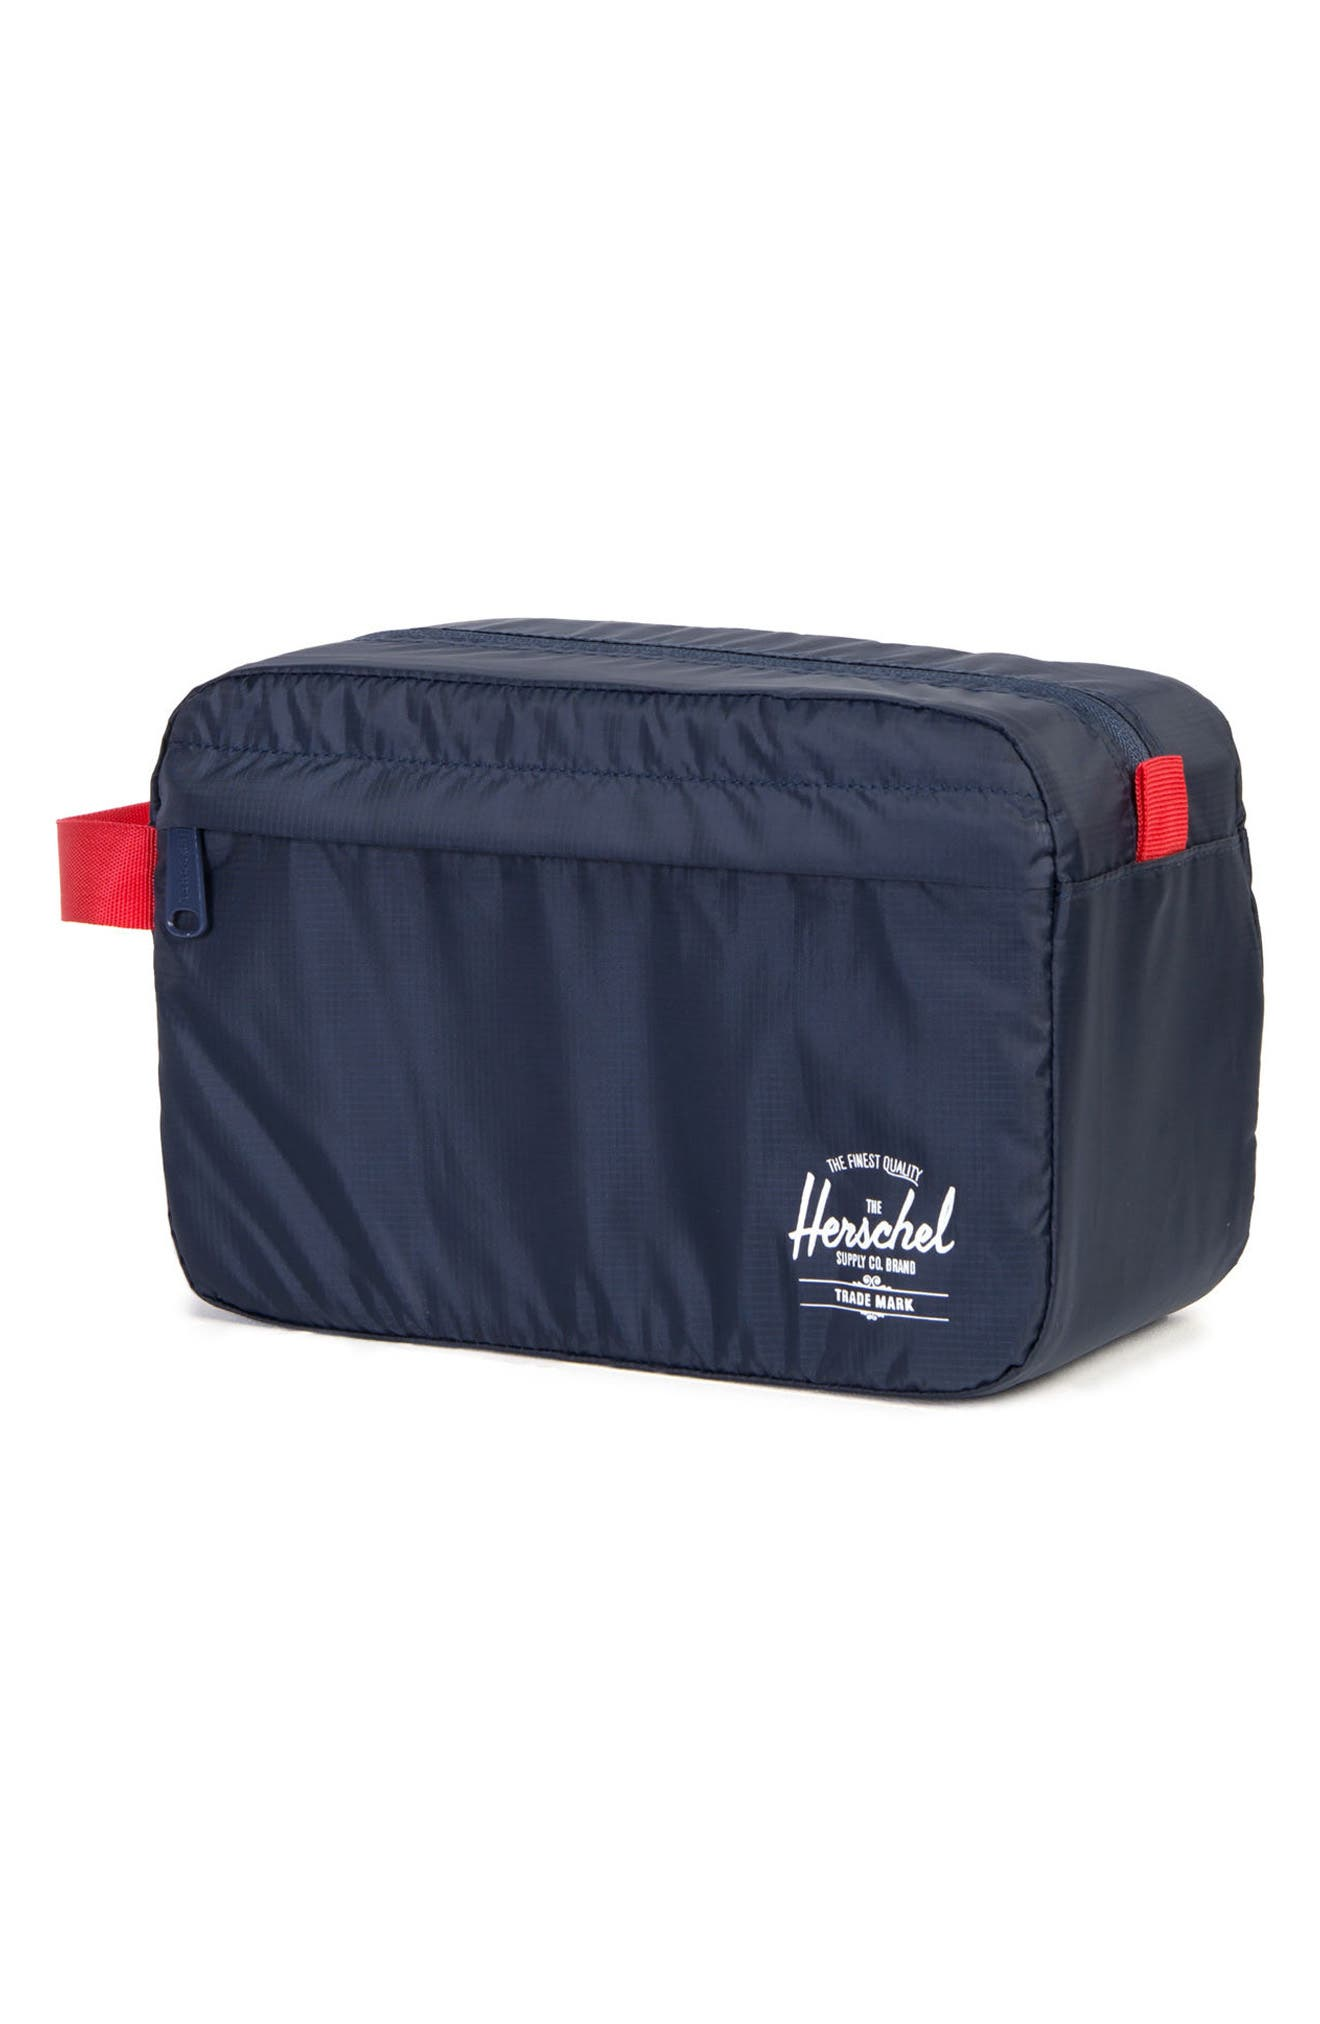 Toiletry Bag,                             Alternate thumbnail 2, color,                             NAVY/ RED